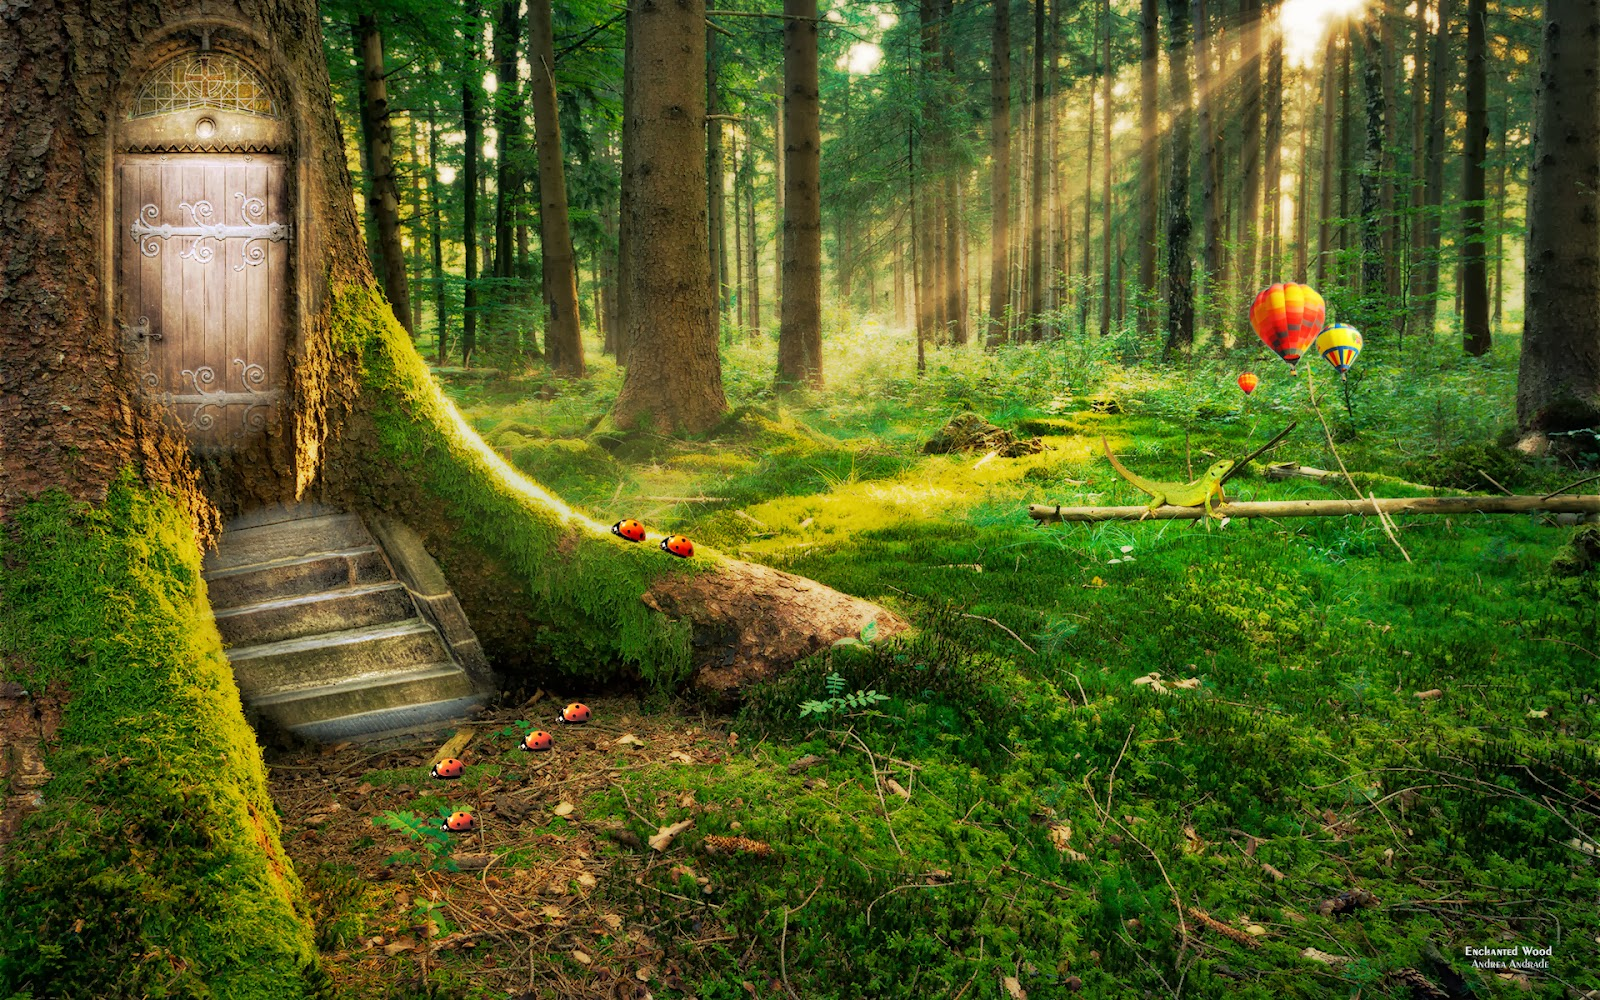 a magical forest essay Magical forest poem by patrycjusz kopec magical forest: in magical forest spring is in the air after long winter sun has finally answered inhabitants.